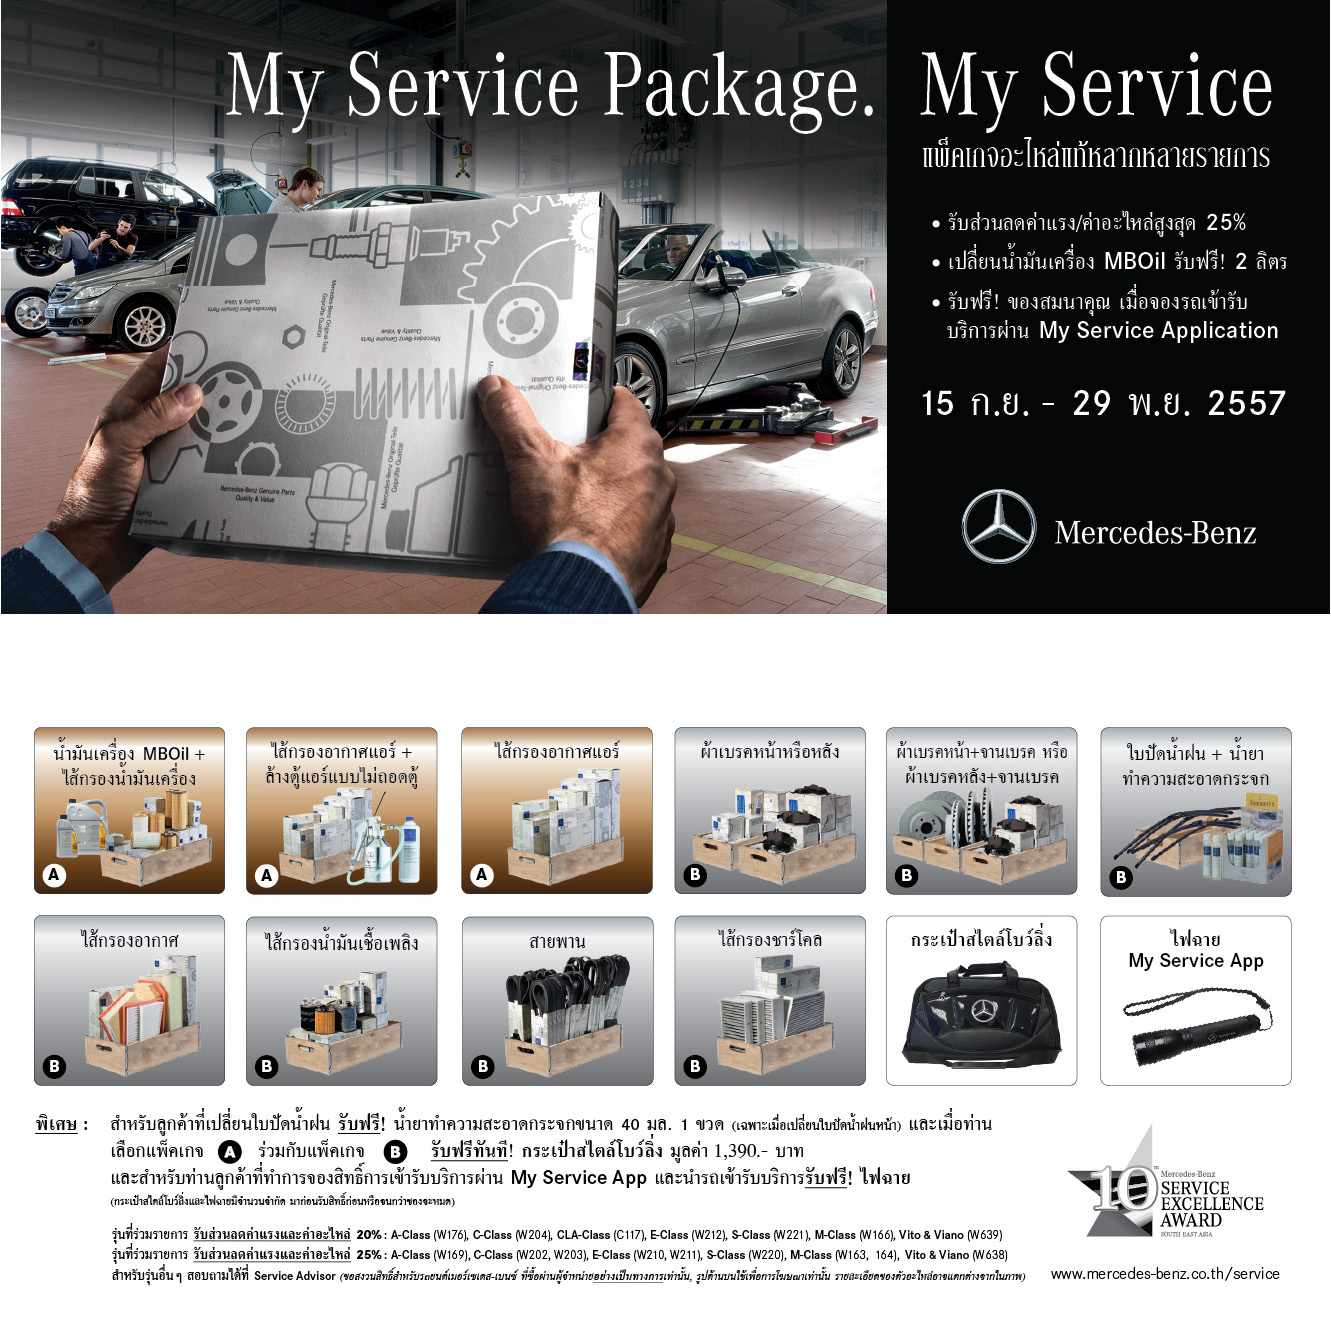 Mercedes benz thailand presents my service package my for Mercedes benz service discount